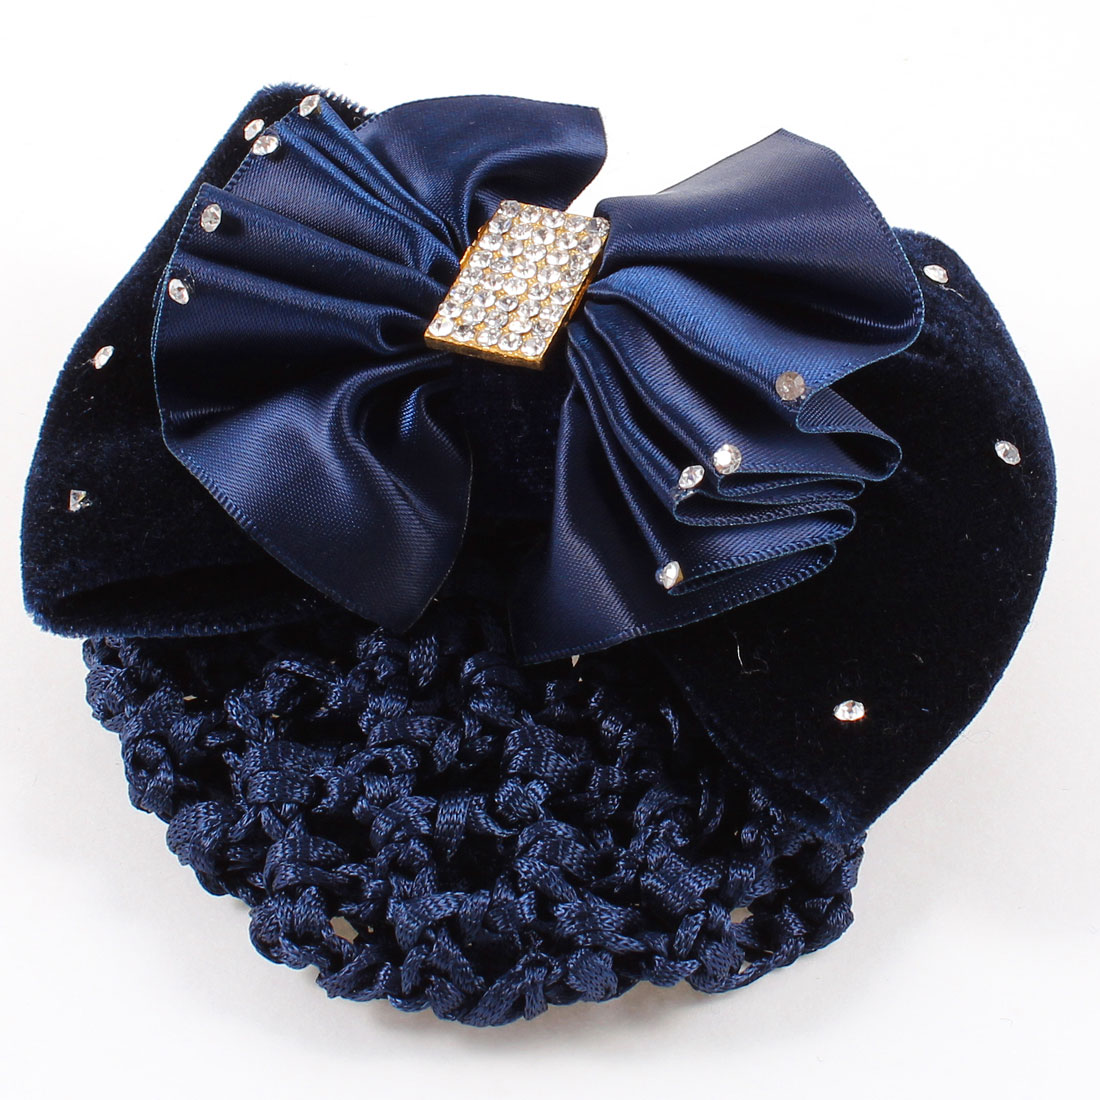 Pleated Bowknot Rhinestones Detail Snood Net French Hair Clip Dark Blue